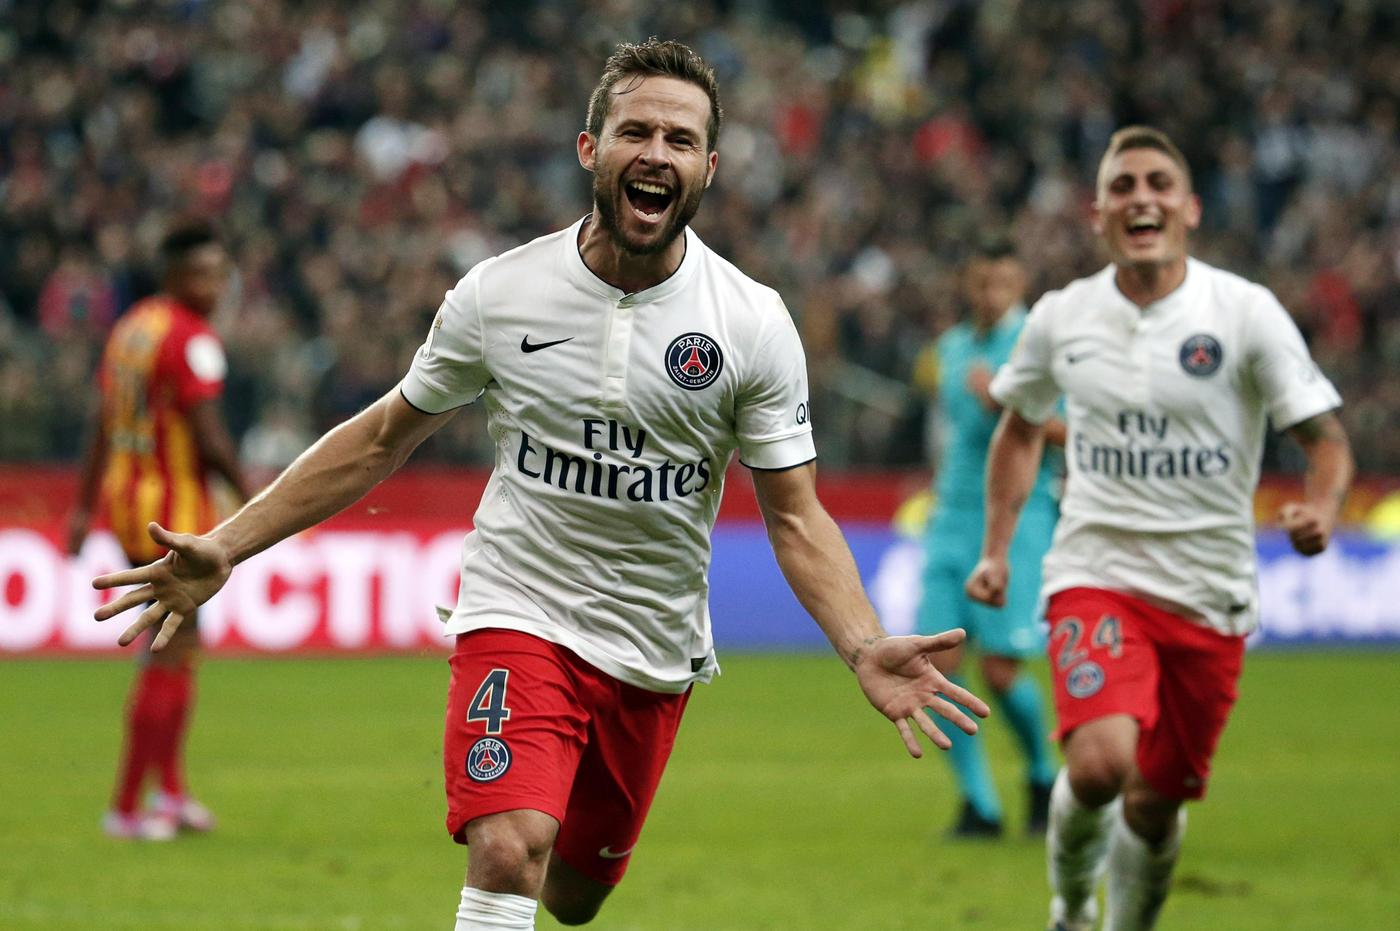 Cabaye's eyeing a move back to England (Picture:Reuters)